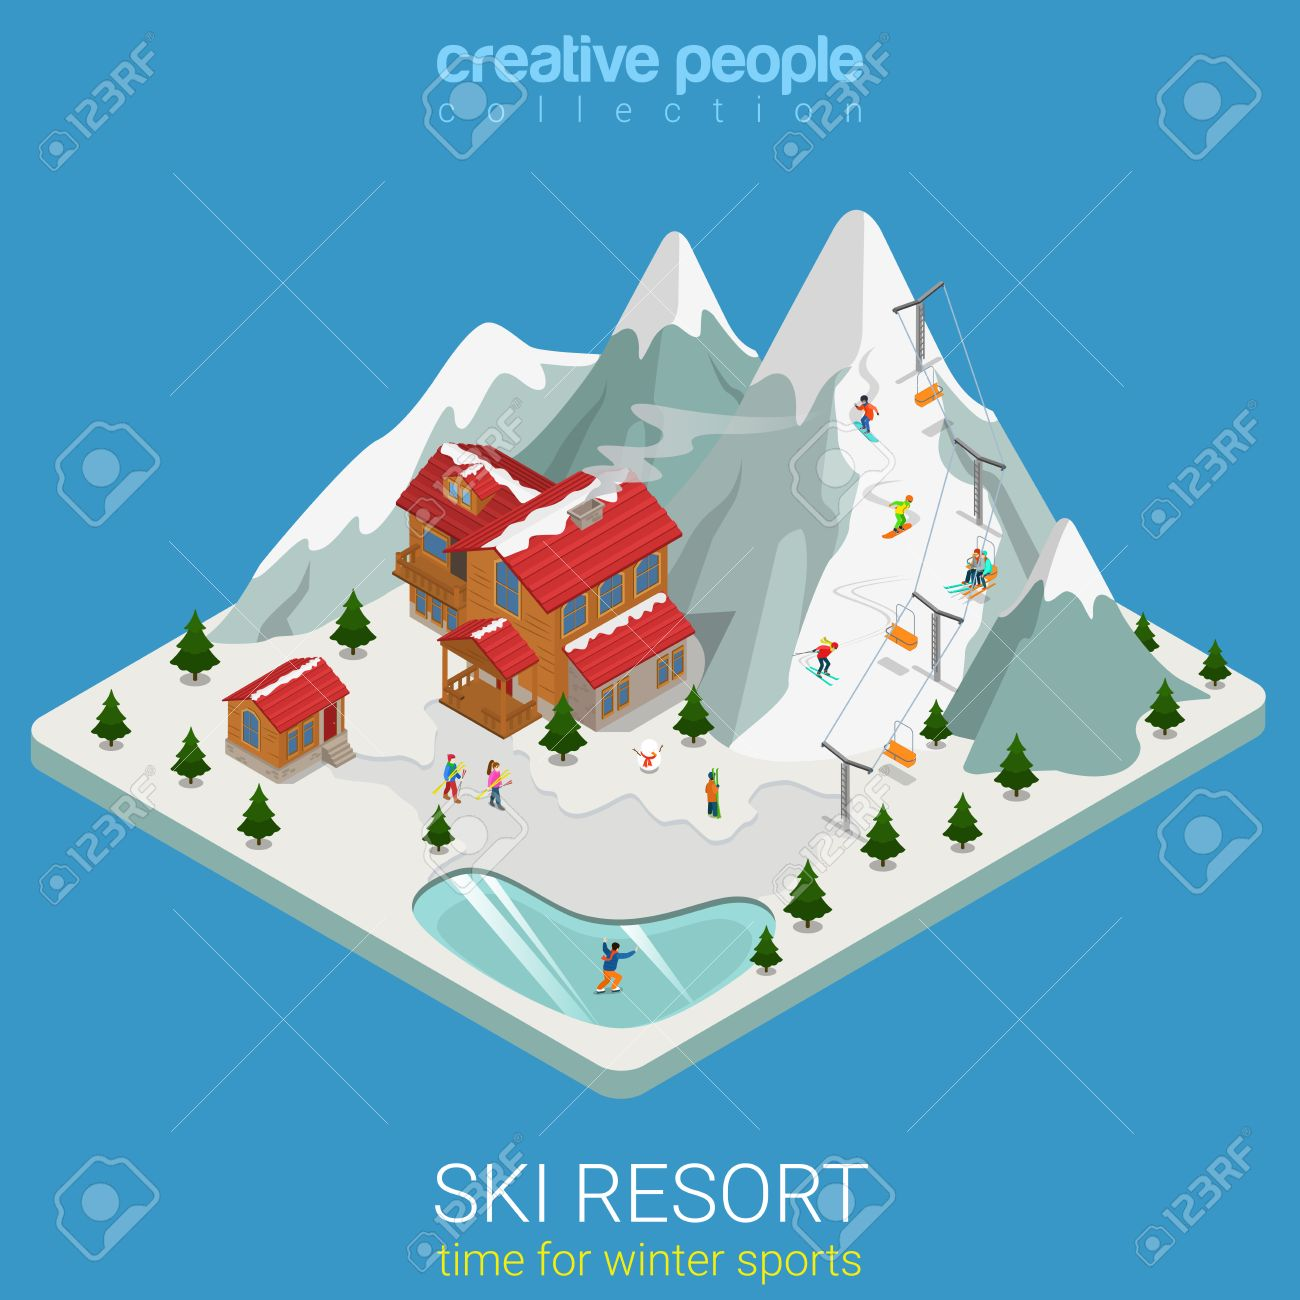 Flat 3d isometric style ski resort winter mountain sports travel concept web infographics vector illustration. Piece hilly land snowboard track ice lake. Creative people website conceptual collection. - 56931650